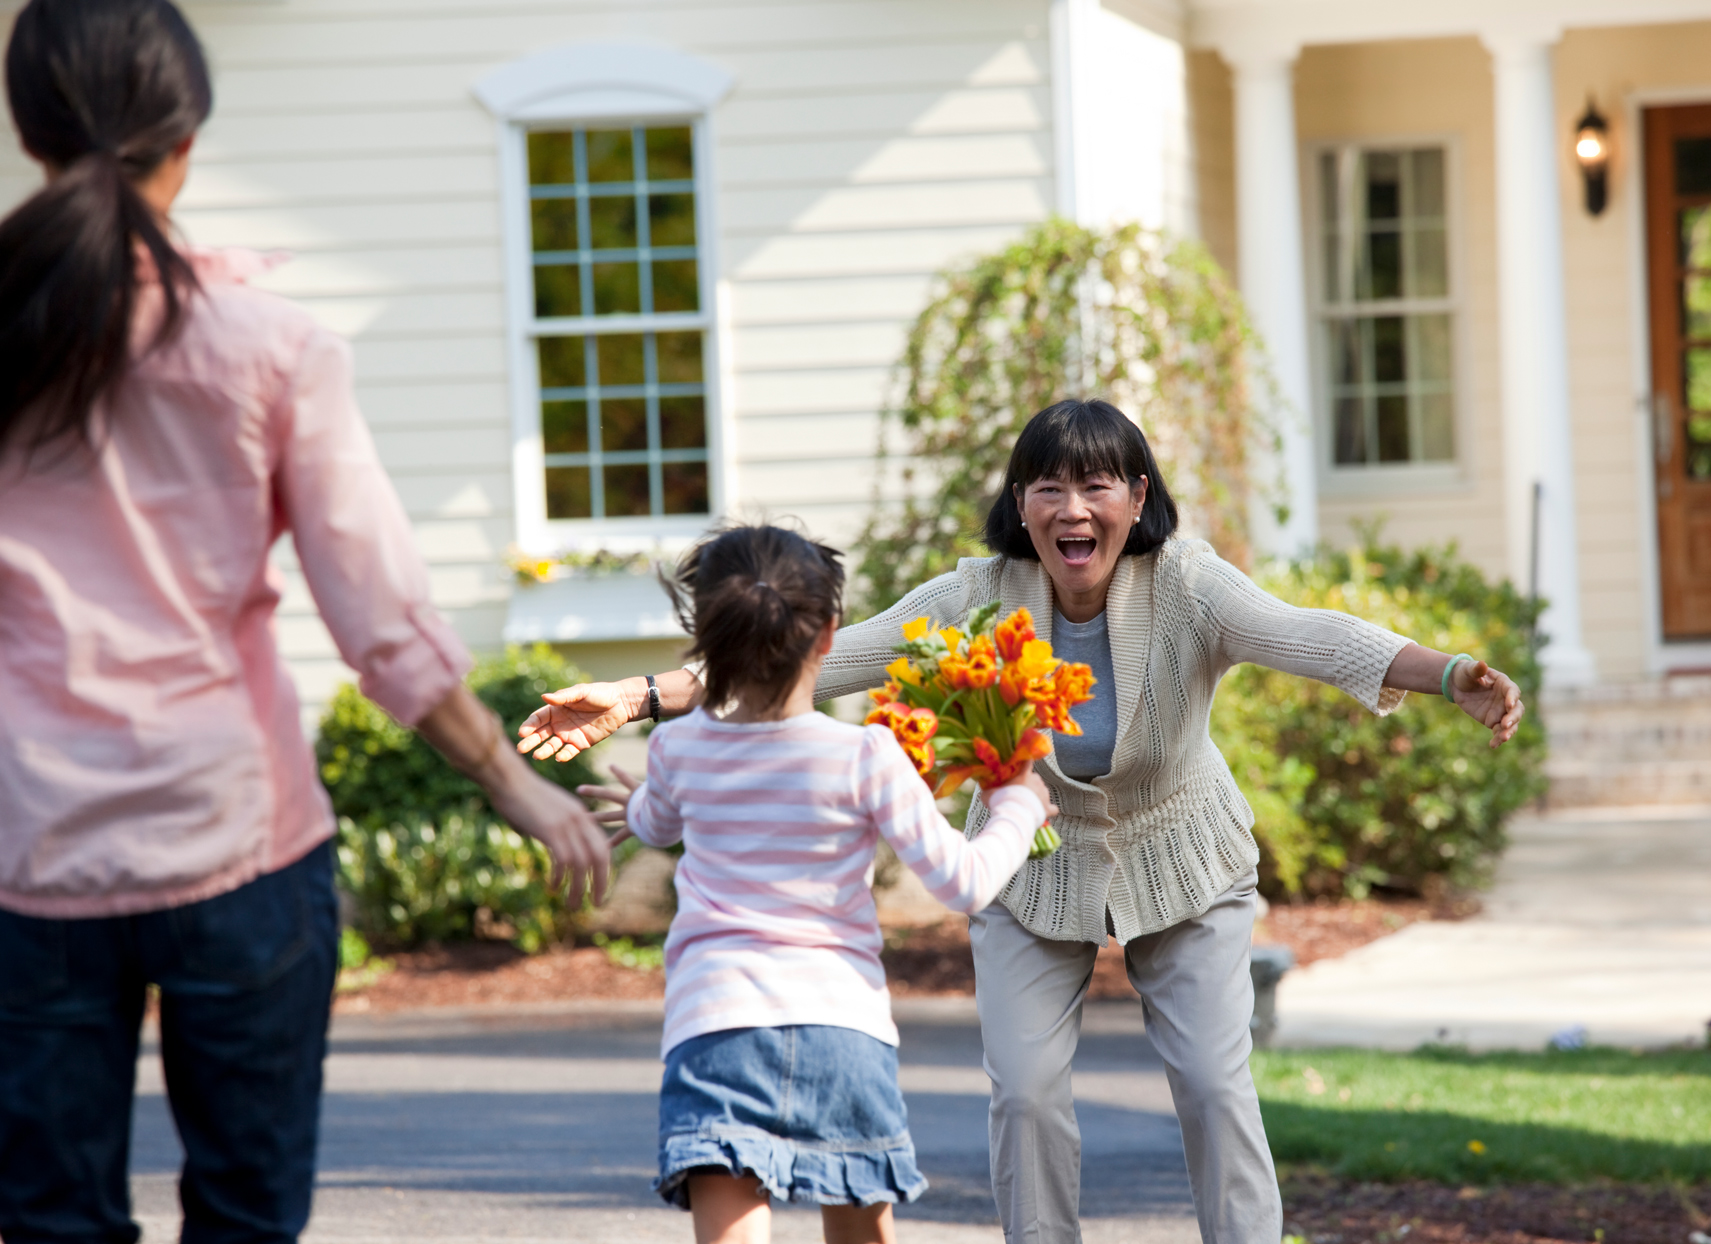 family welcoming woman with flowers